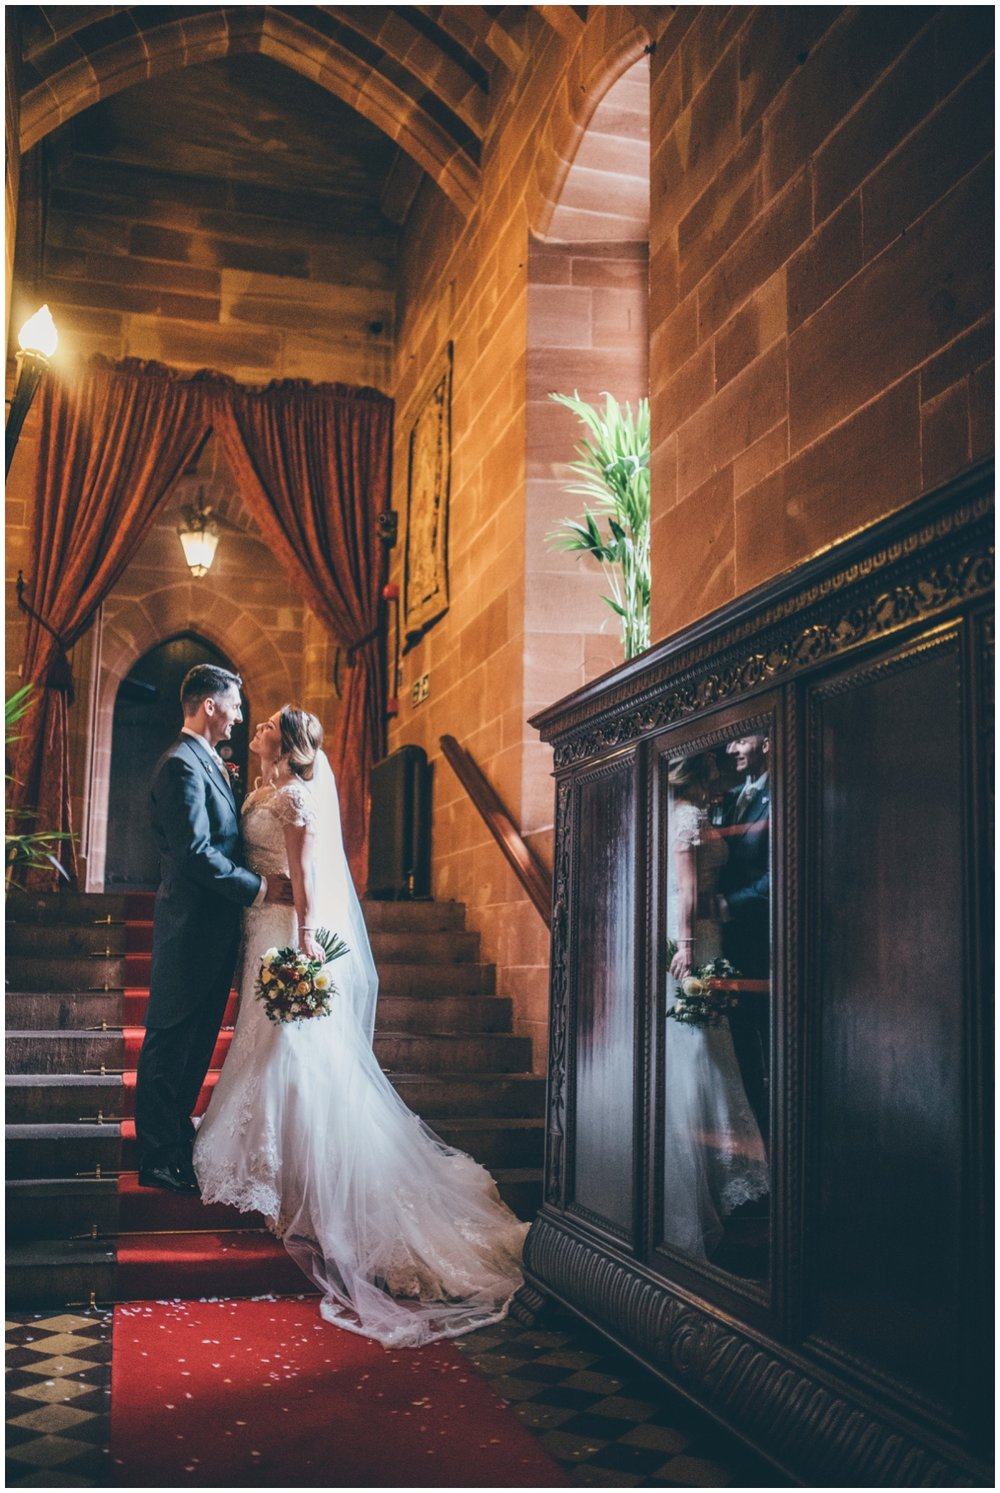 Peckforton Castle makes a beautiful backdrop for wedding photographs.